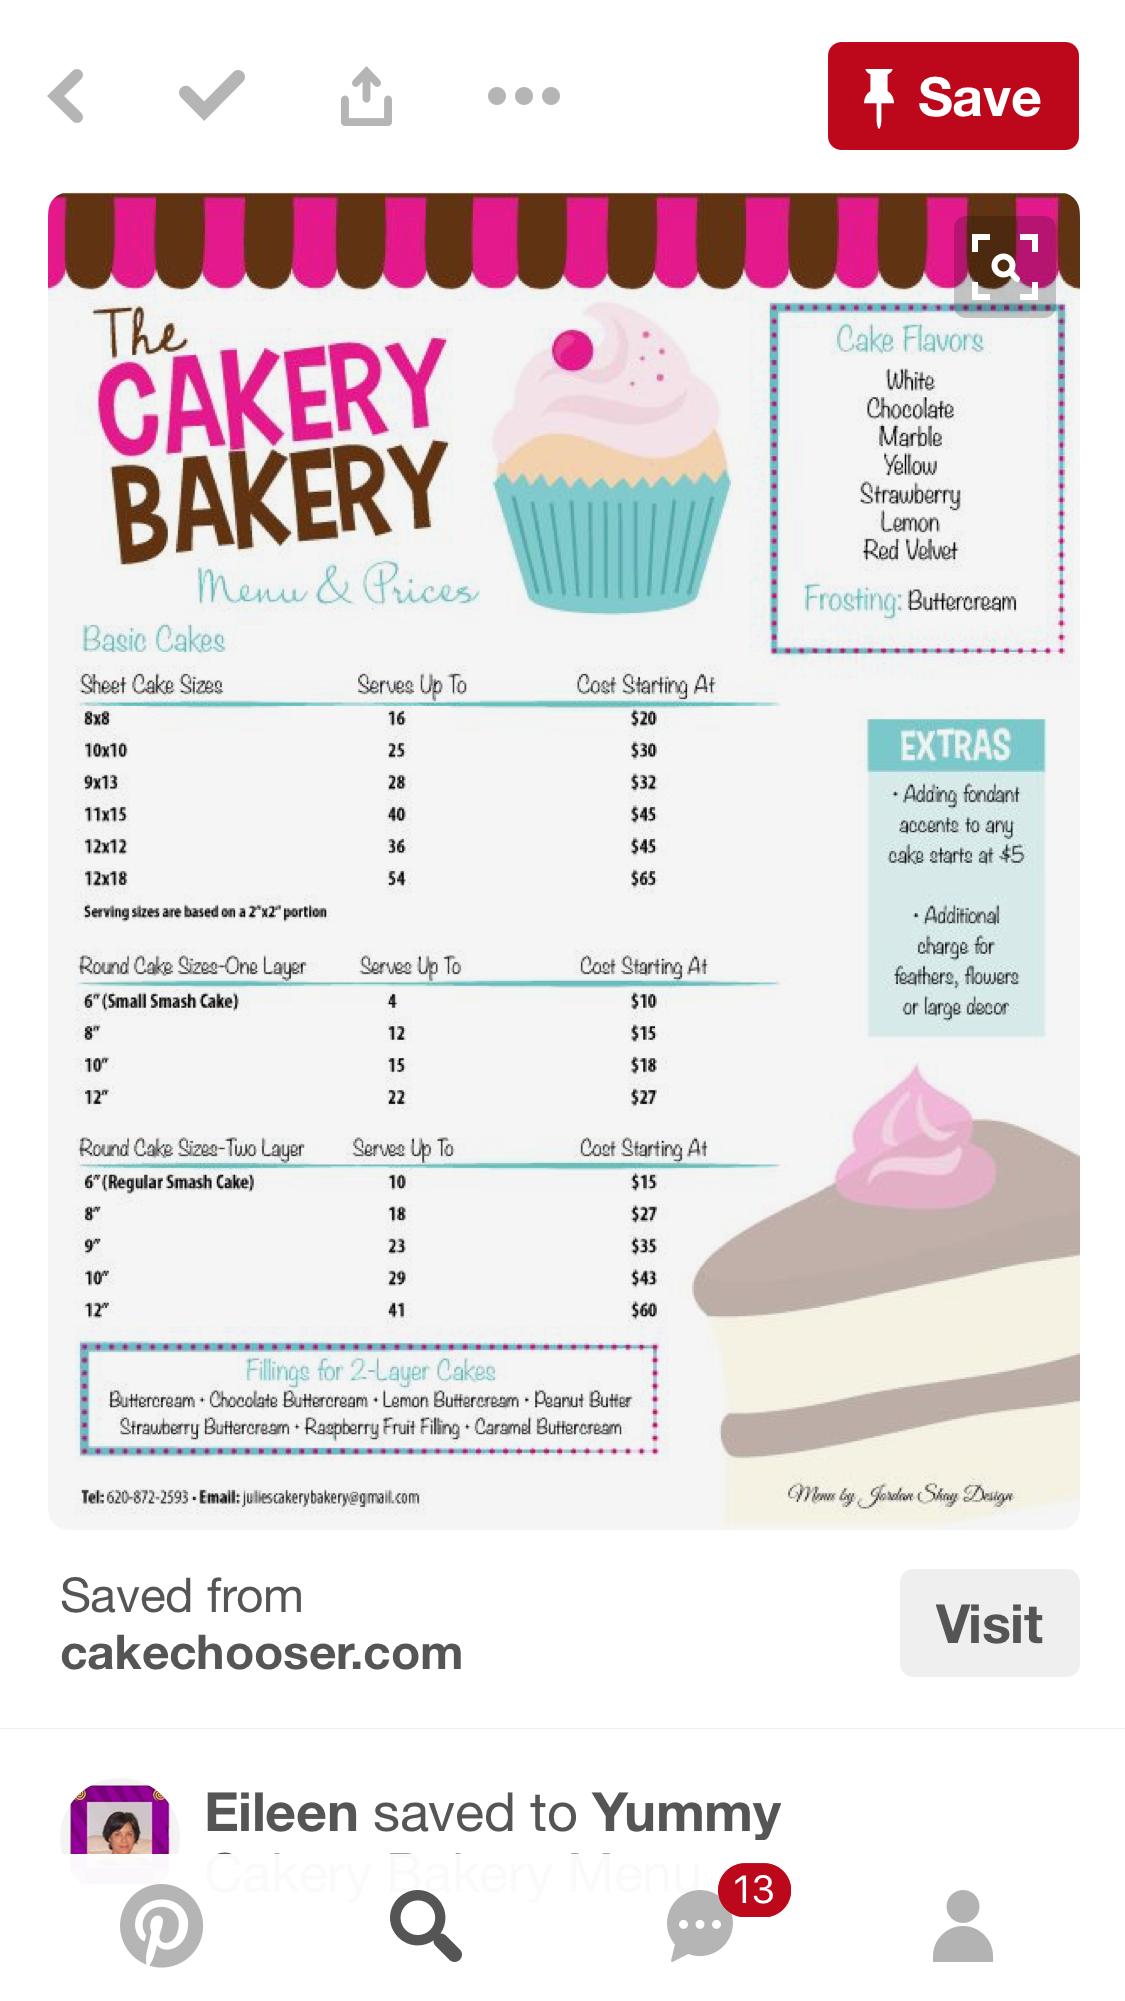 Pin By Iceli On Pasteles Postres Bakery Menu Cake Pricing Baking Business